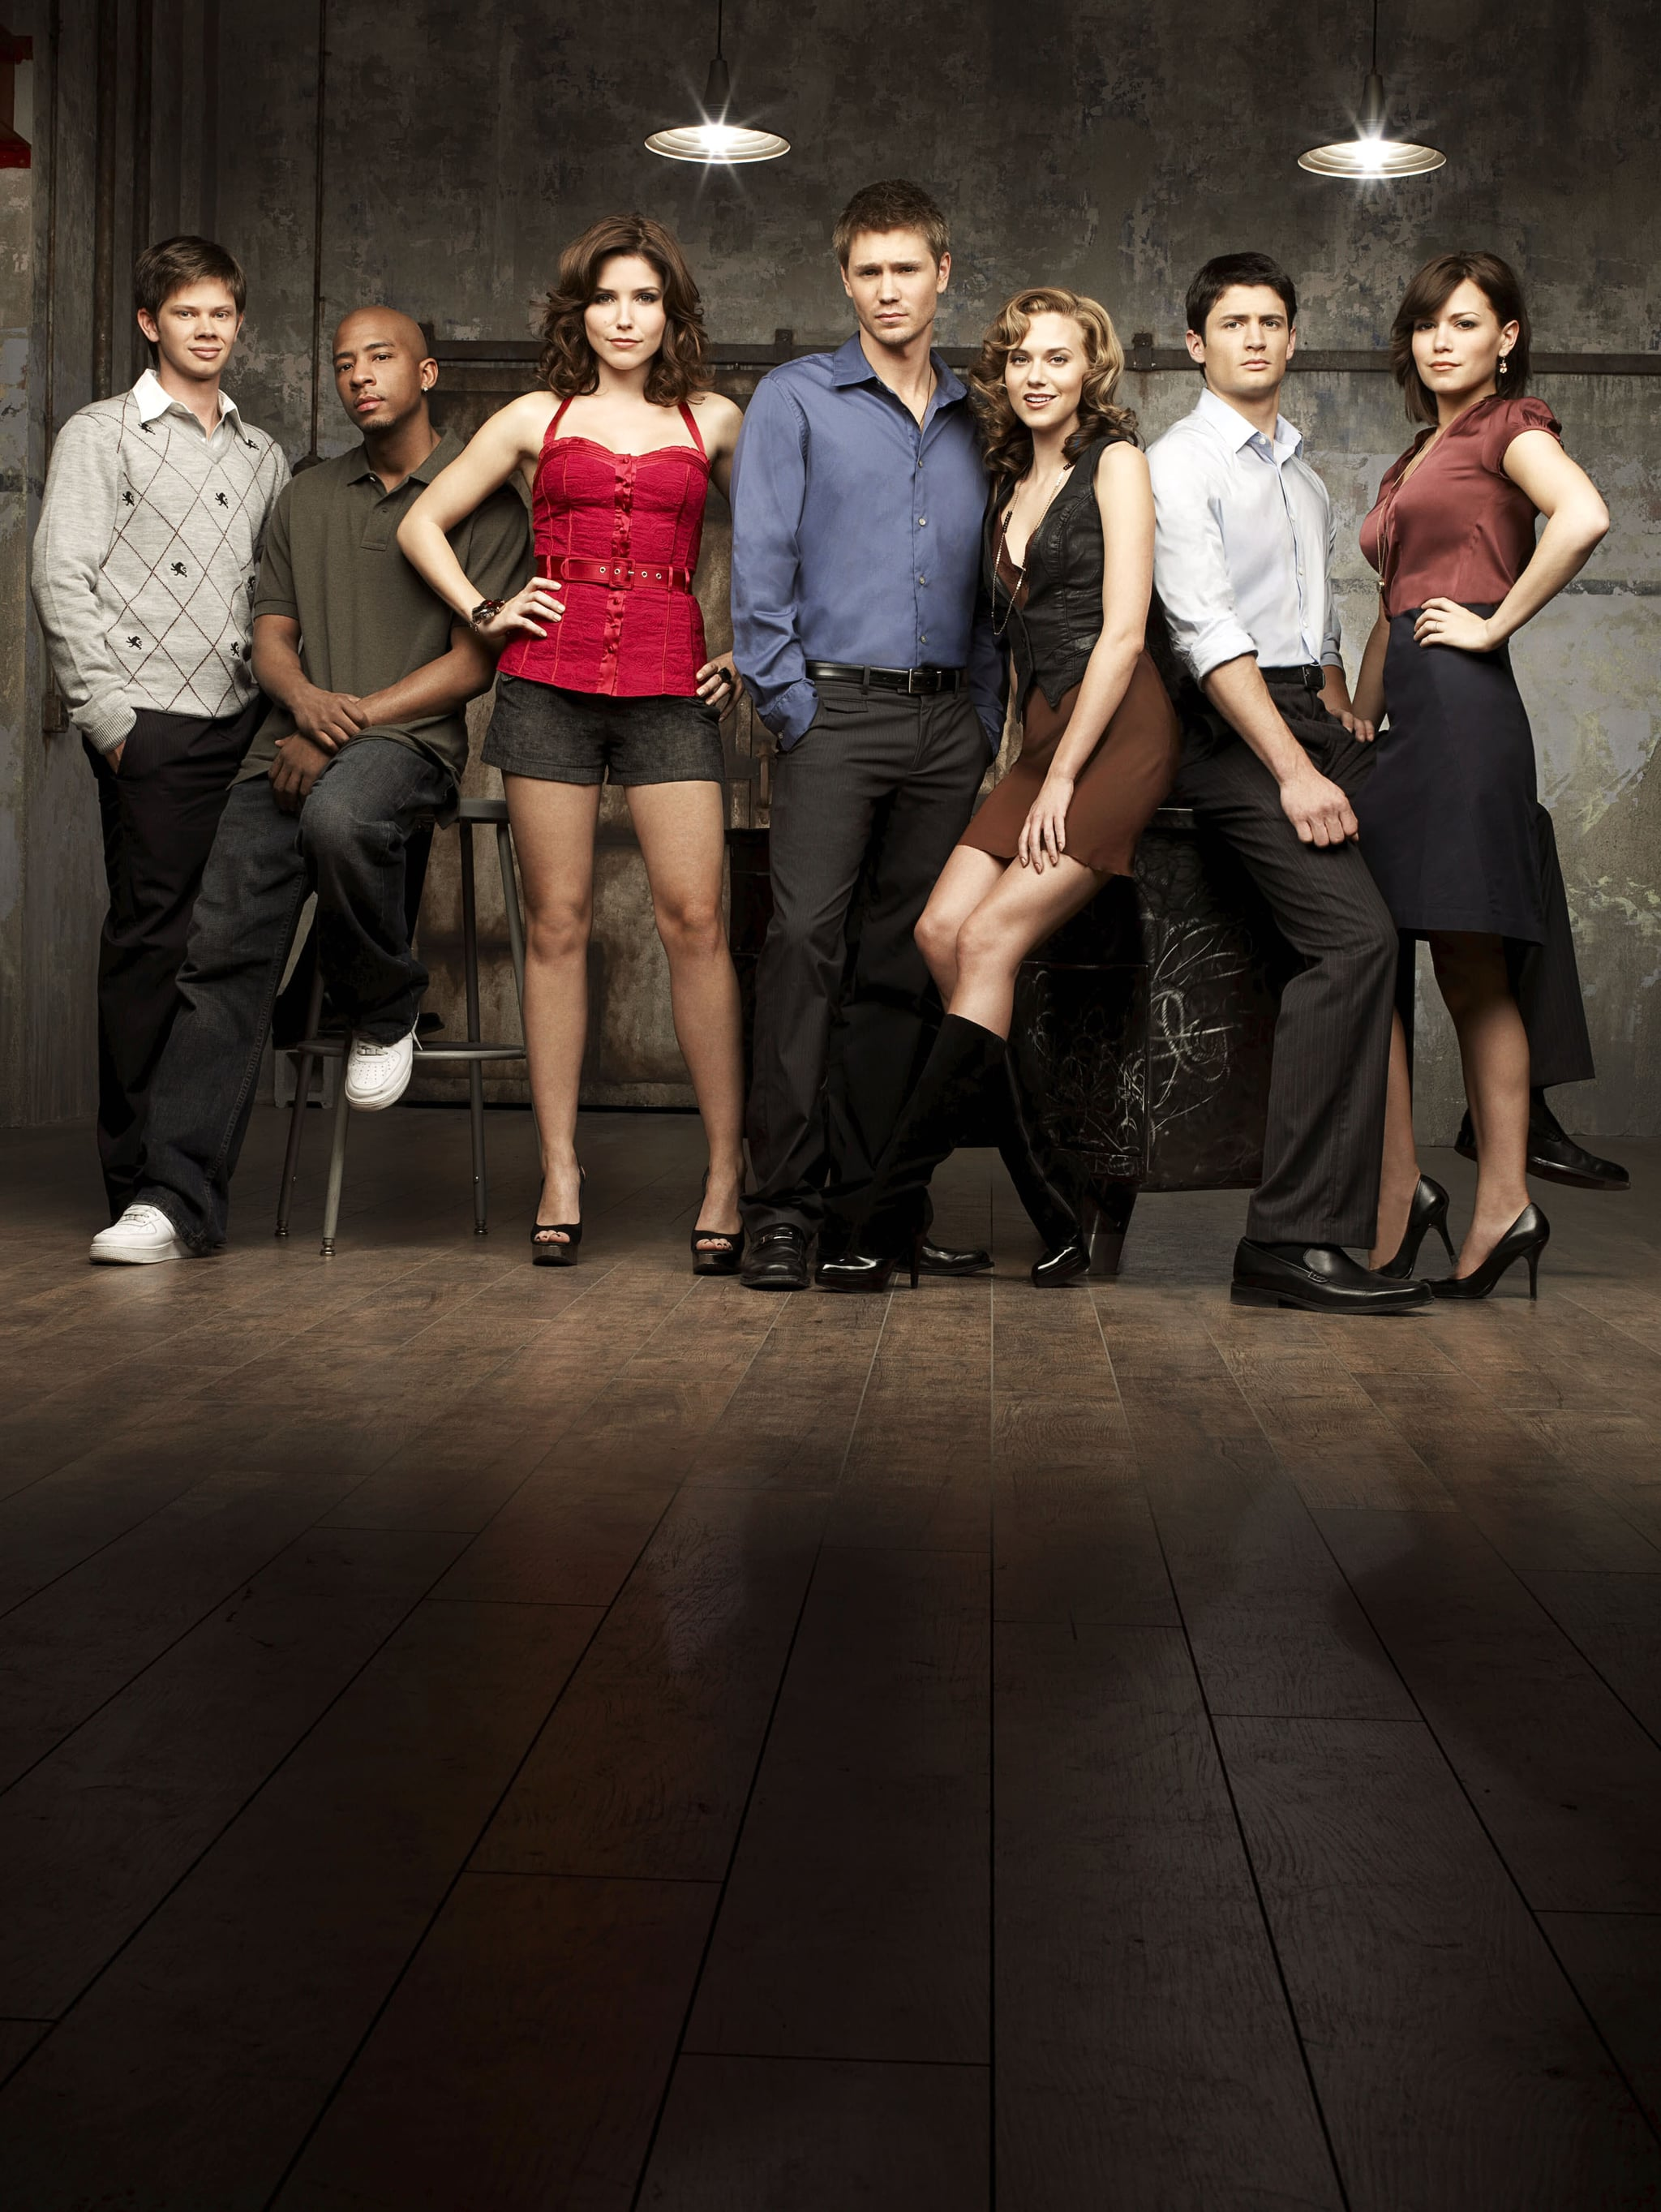 ONE TREE HILL, Lee Norris, Antwon Tanner , Sophia Bush, Chad Michael Murray, Hilarie Burton, James Lafferty, Bethany Joy Galeotti,  (Season 5), 2003-,.   CW / courtesy everett collection